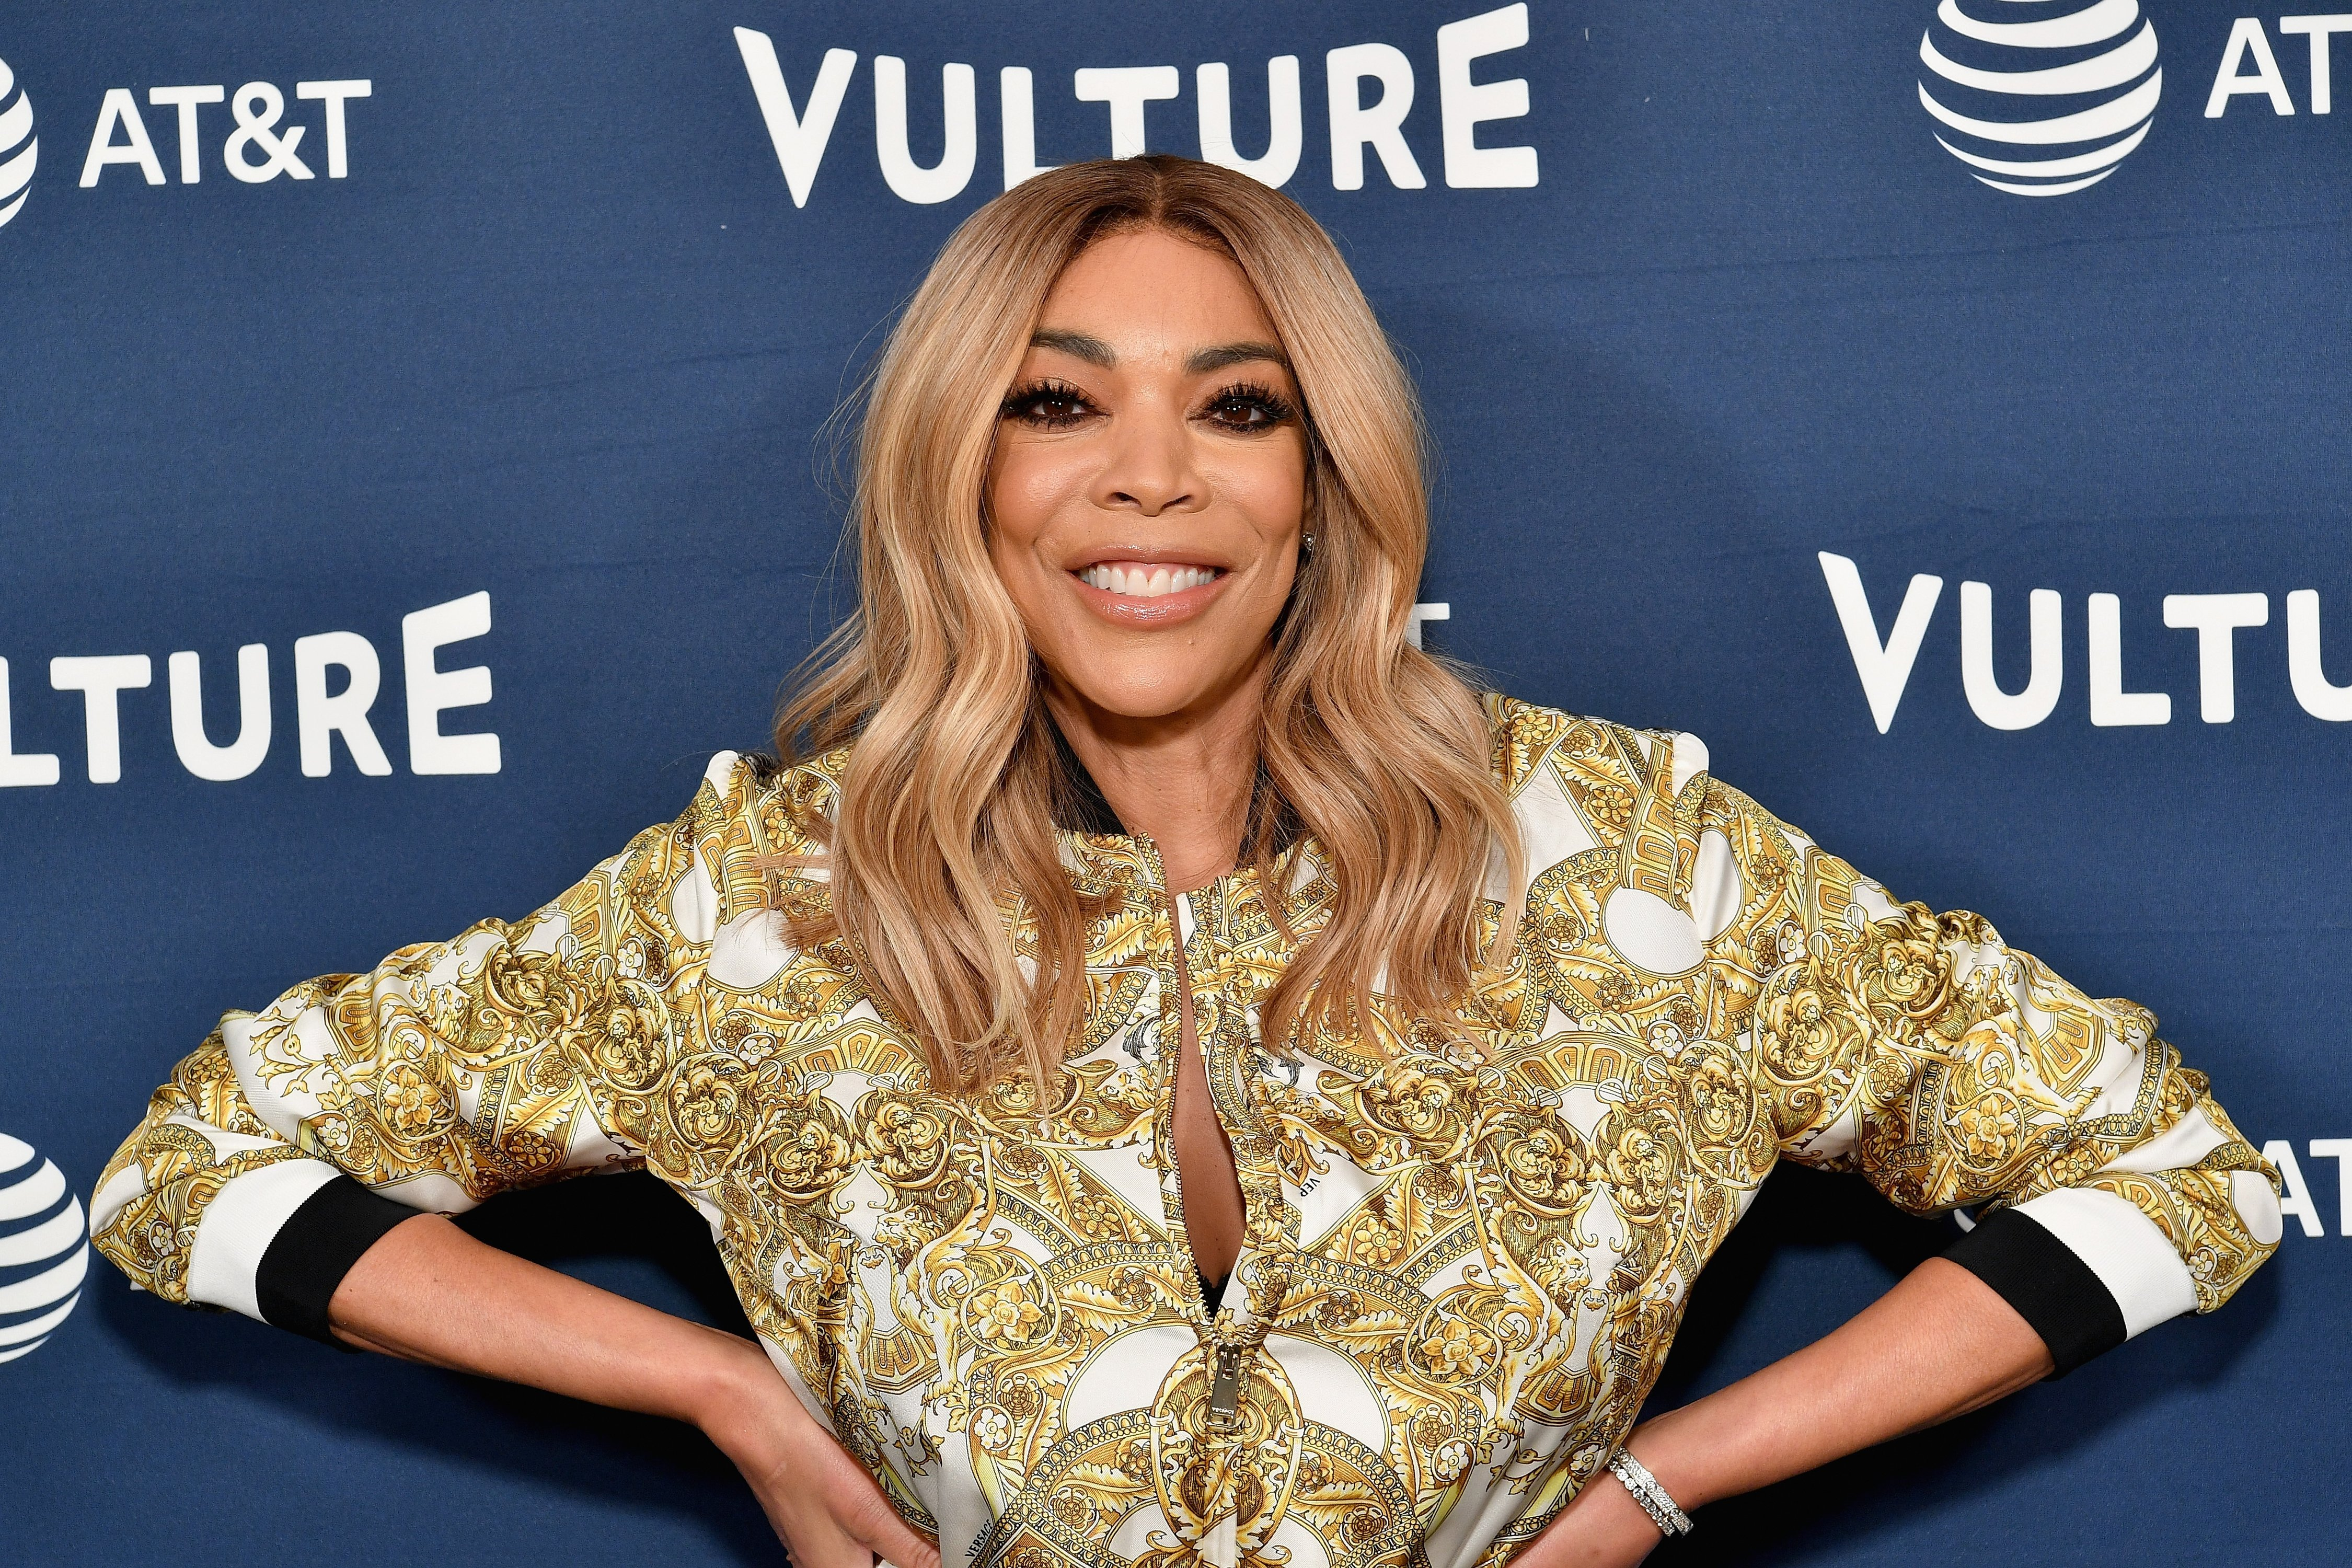 Wendy Williams attends the Vulture Festival on May 19, 2018 in New York City | Photo: Getty Images